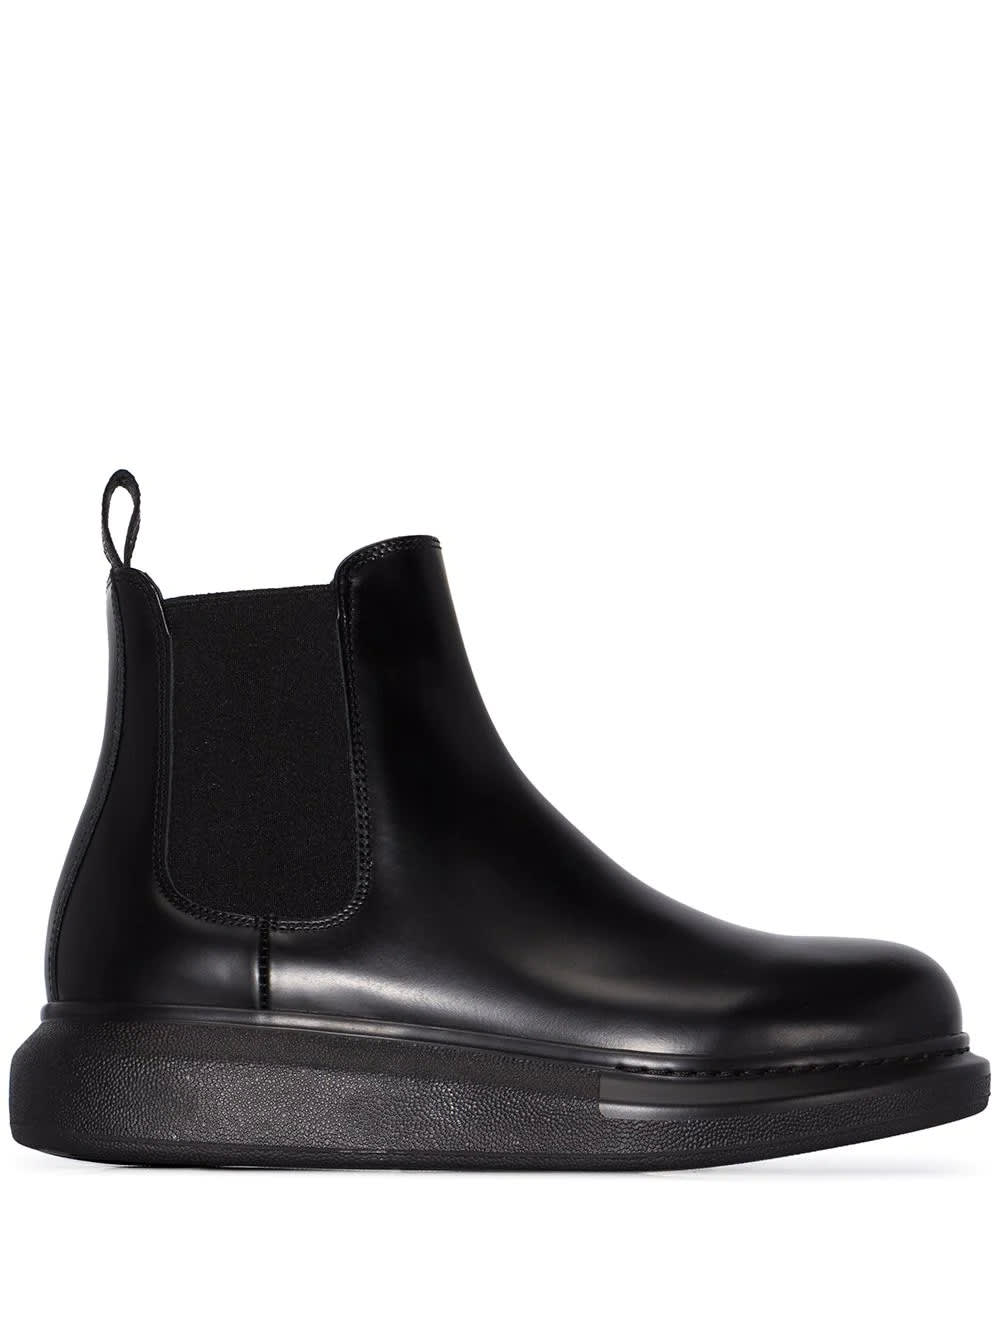 Buy Alexander McQueen Woman Black Chelsea Hybrid Ankle Boot online, shop Alexander McQueen shoes with free shipping